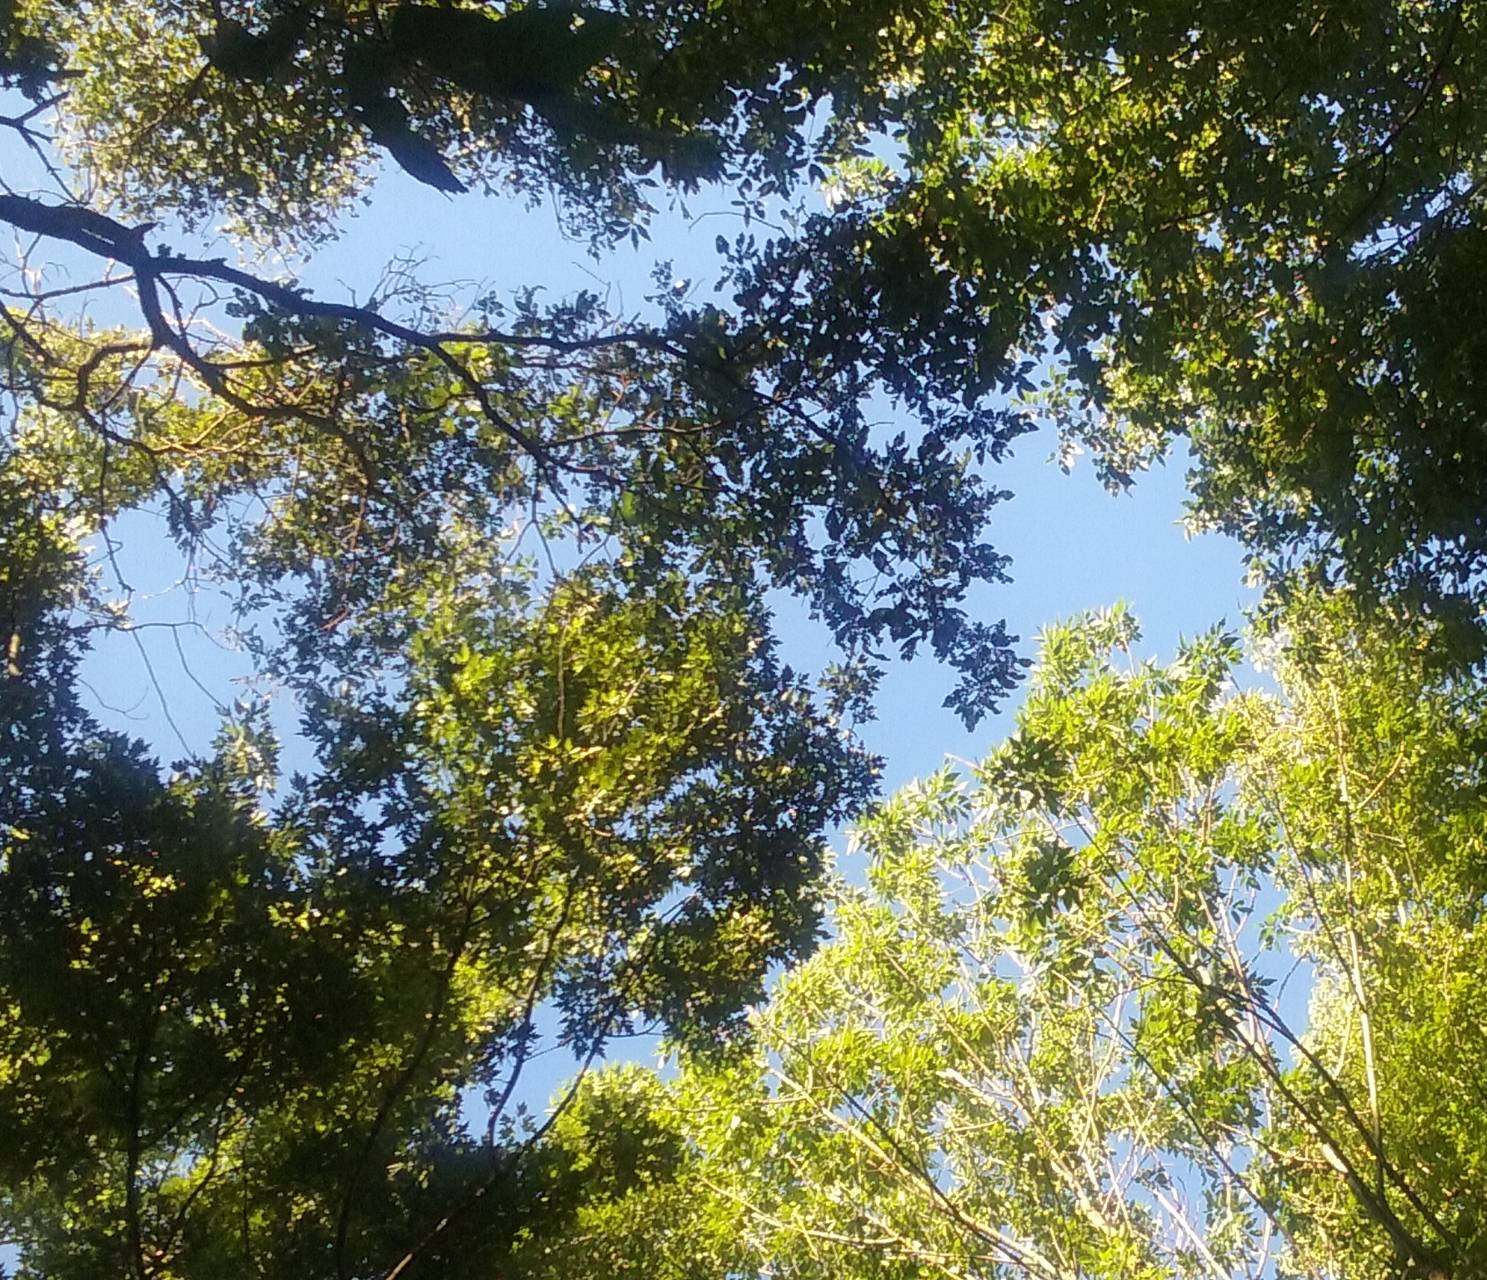 Up trees